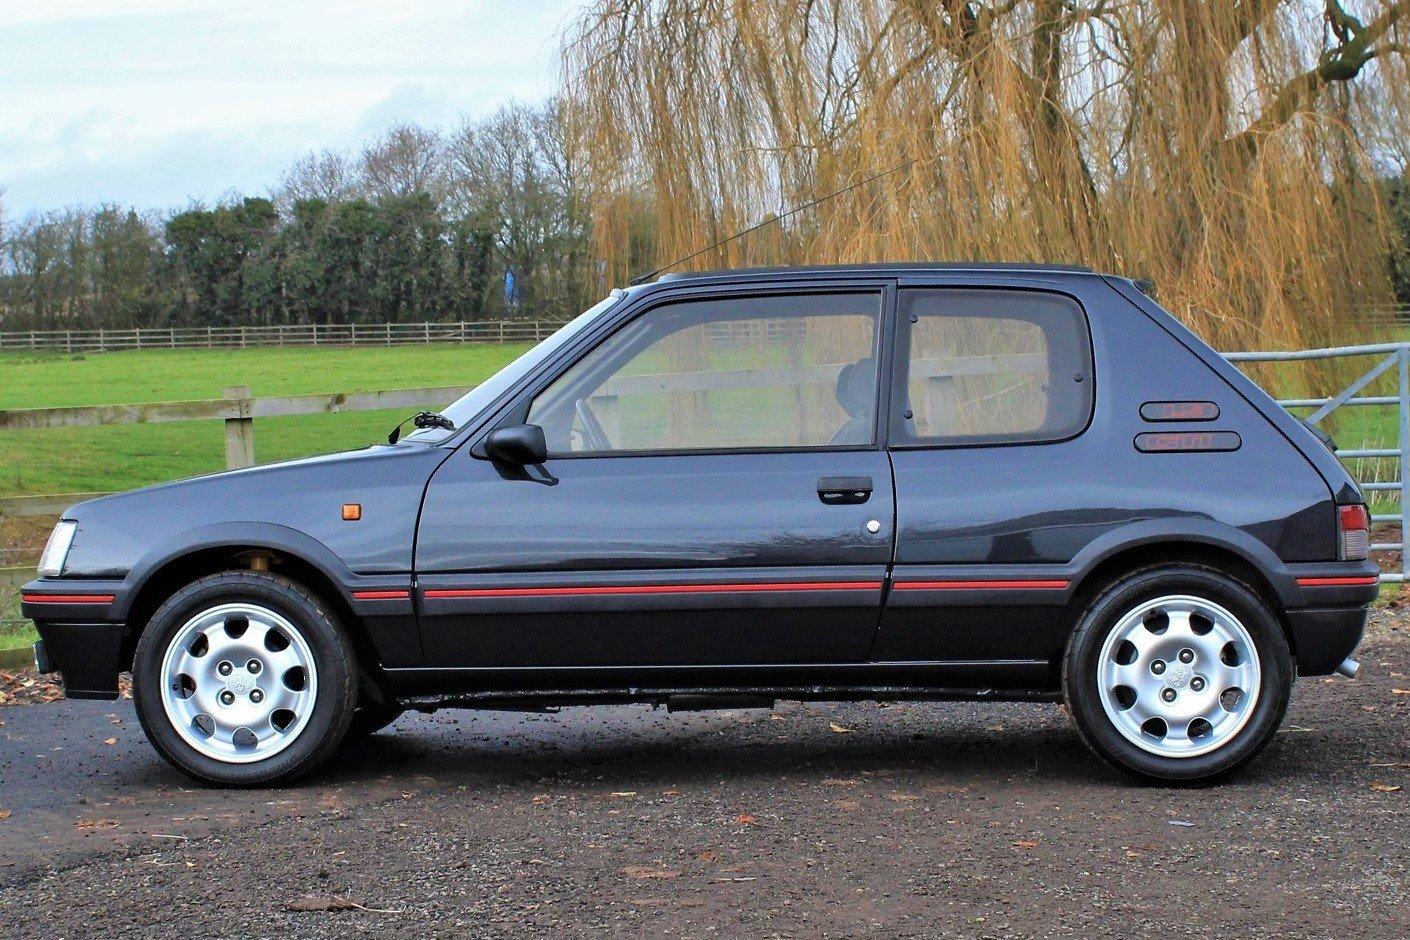 1991 Peugeot 205 GTI 1.9,65,534 miles,A/C,Seibu Japan For Sale (picture 1 of 6)